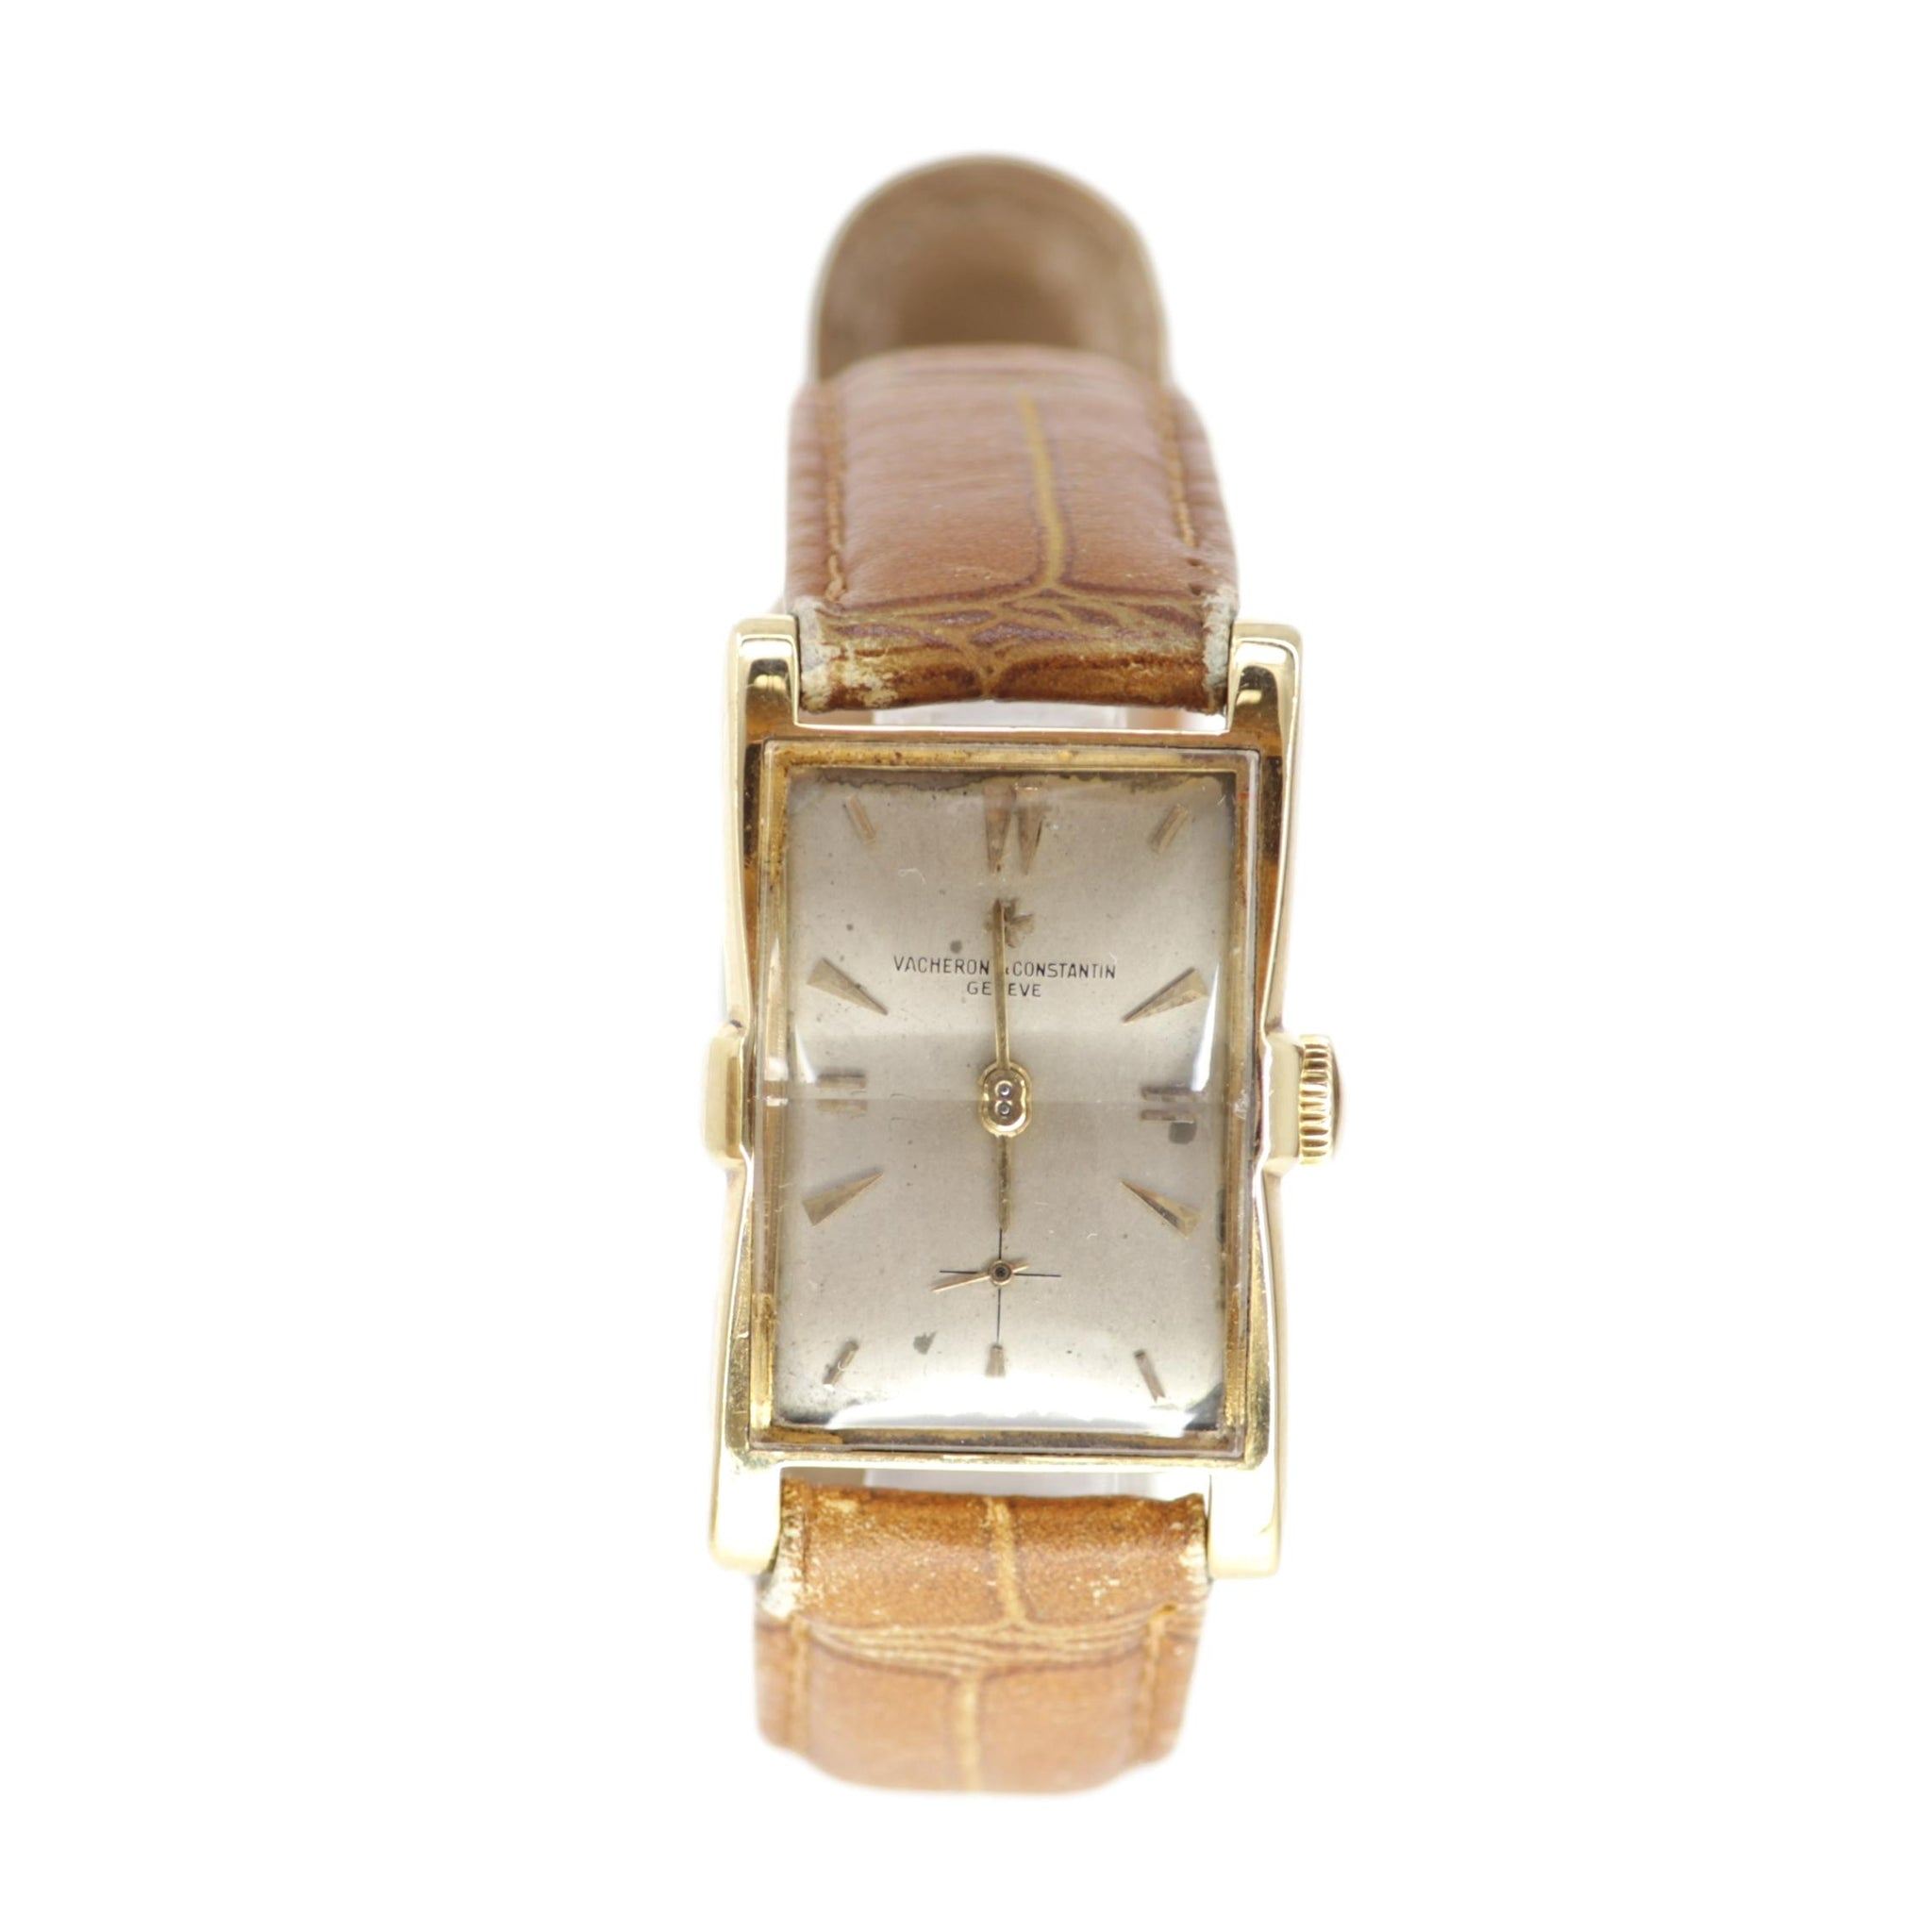 Vacheron Constantin 18K Yellow Gold Vintage Watch